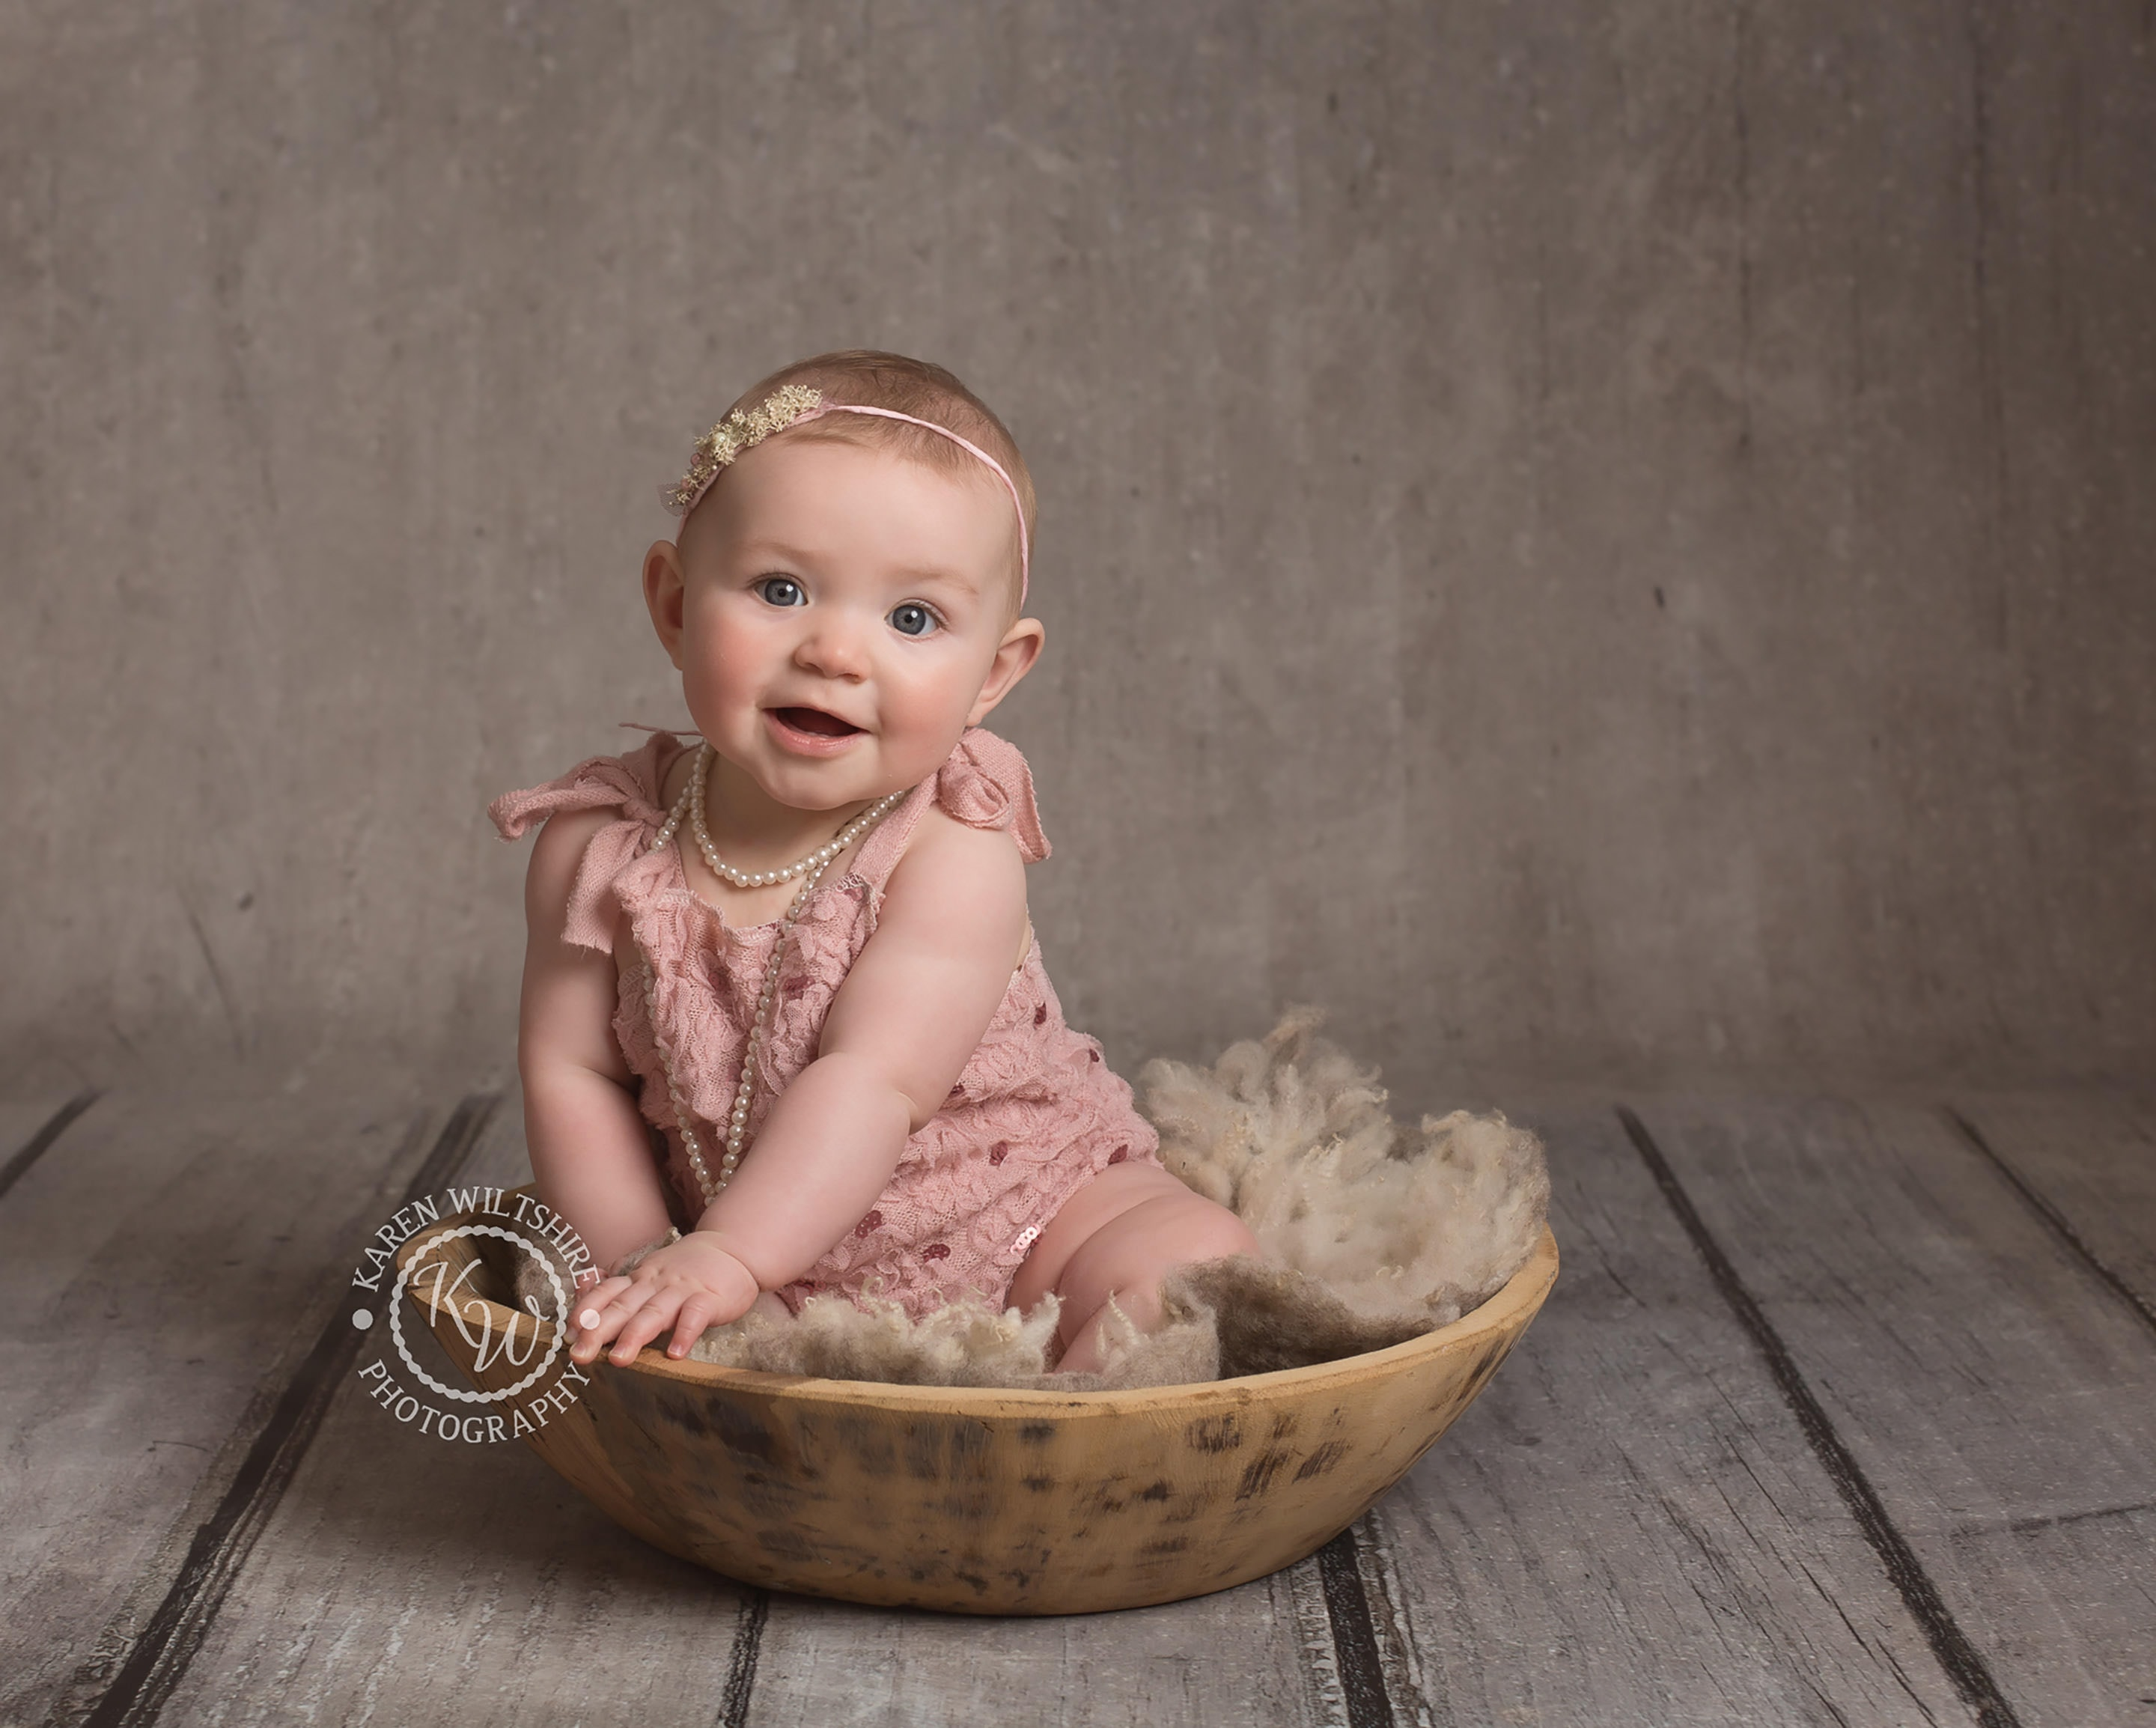 children & baby photography,cute baby in pink outfit smiling at the camera